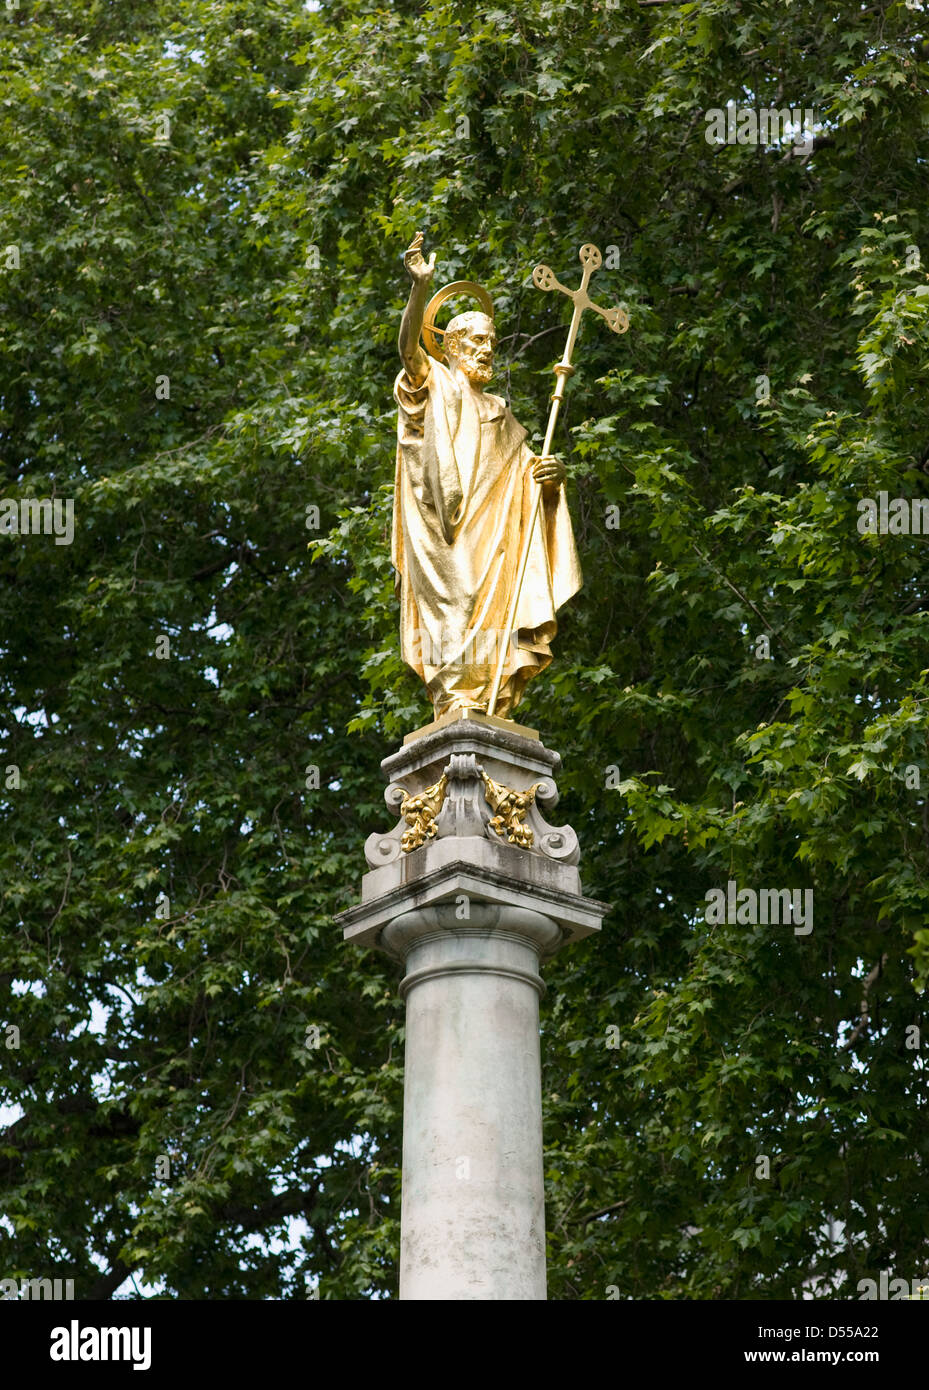 Saint Paul's Cathedral gilded statue of St Paul - Stock Image